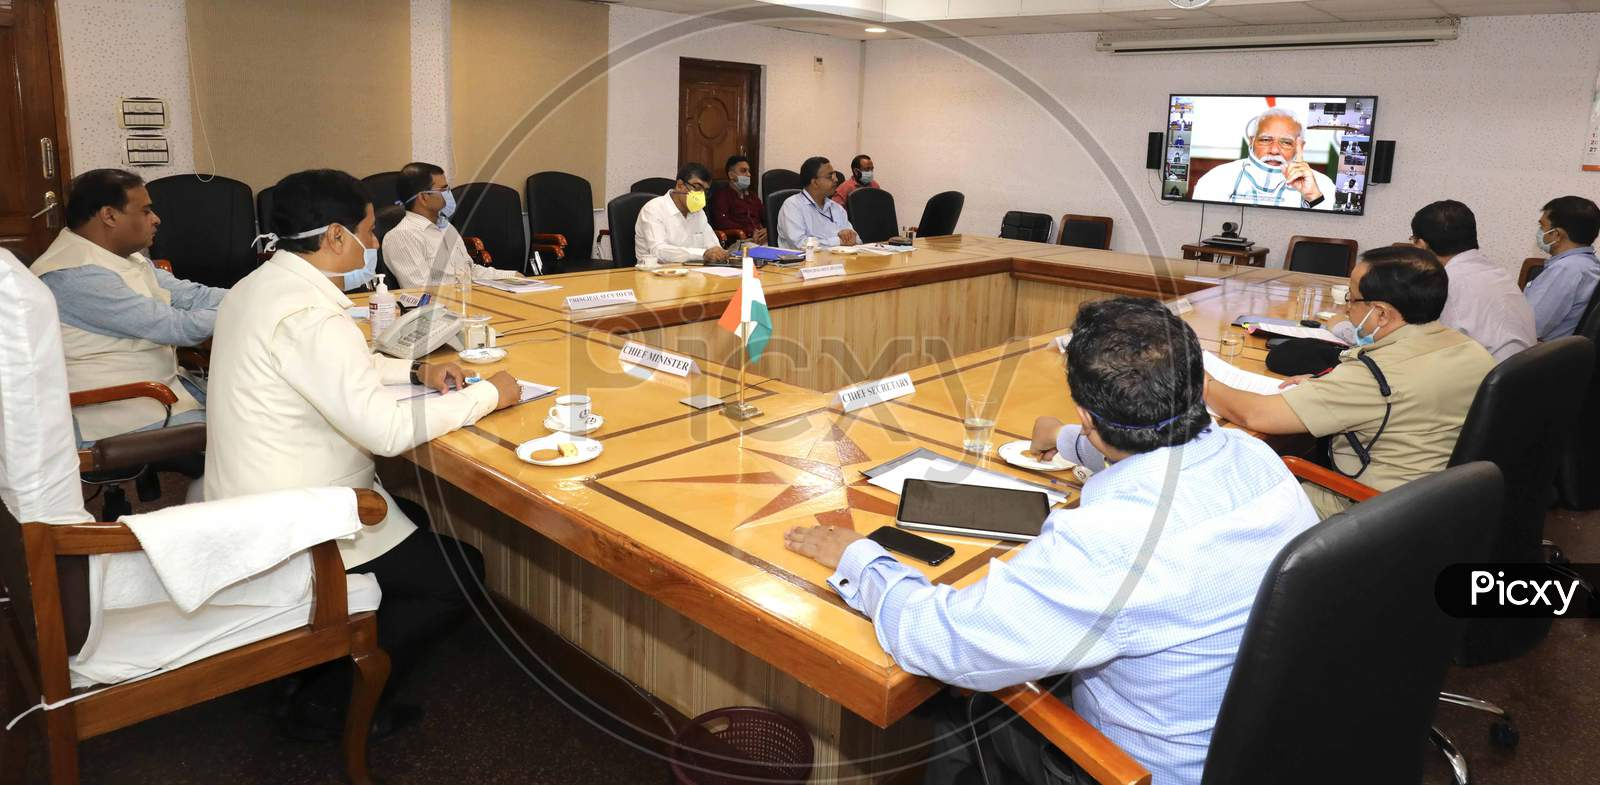 Assam Chief Minister Sarbananda Sonowal Attending The Prime Minister'S  Video Conference With Chief Ministers About Nationwide Lockdown Amidst Coronavirus Or Covid-19 Outbreak  In Guwahati  On April 27,2020